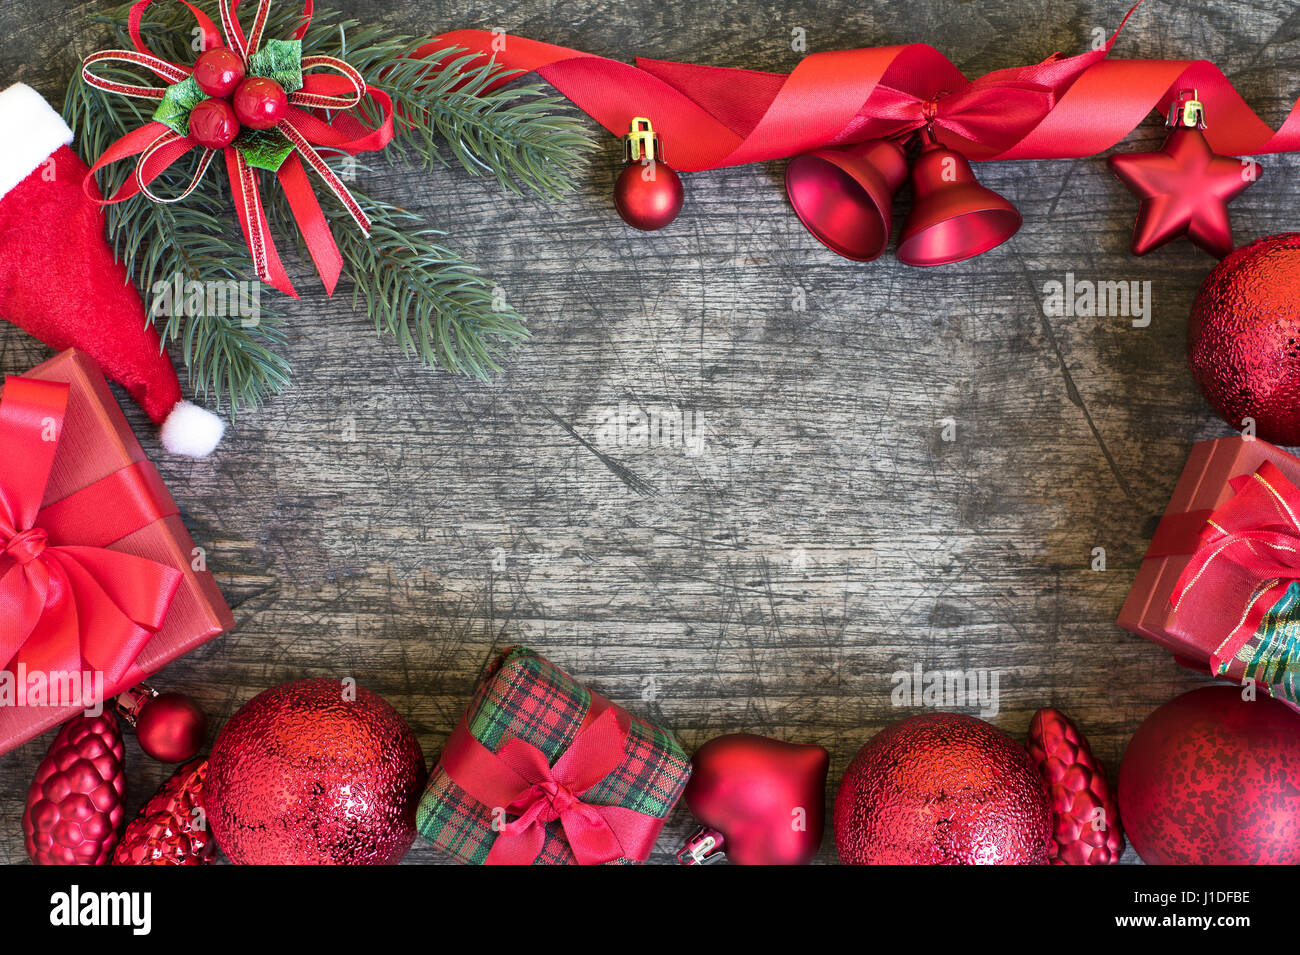 christmas background frame decorations gift boxes with claus hat and red ribbon bow with ornament bauble on vintage wooden table with copy space still